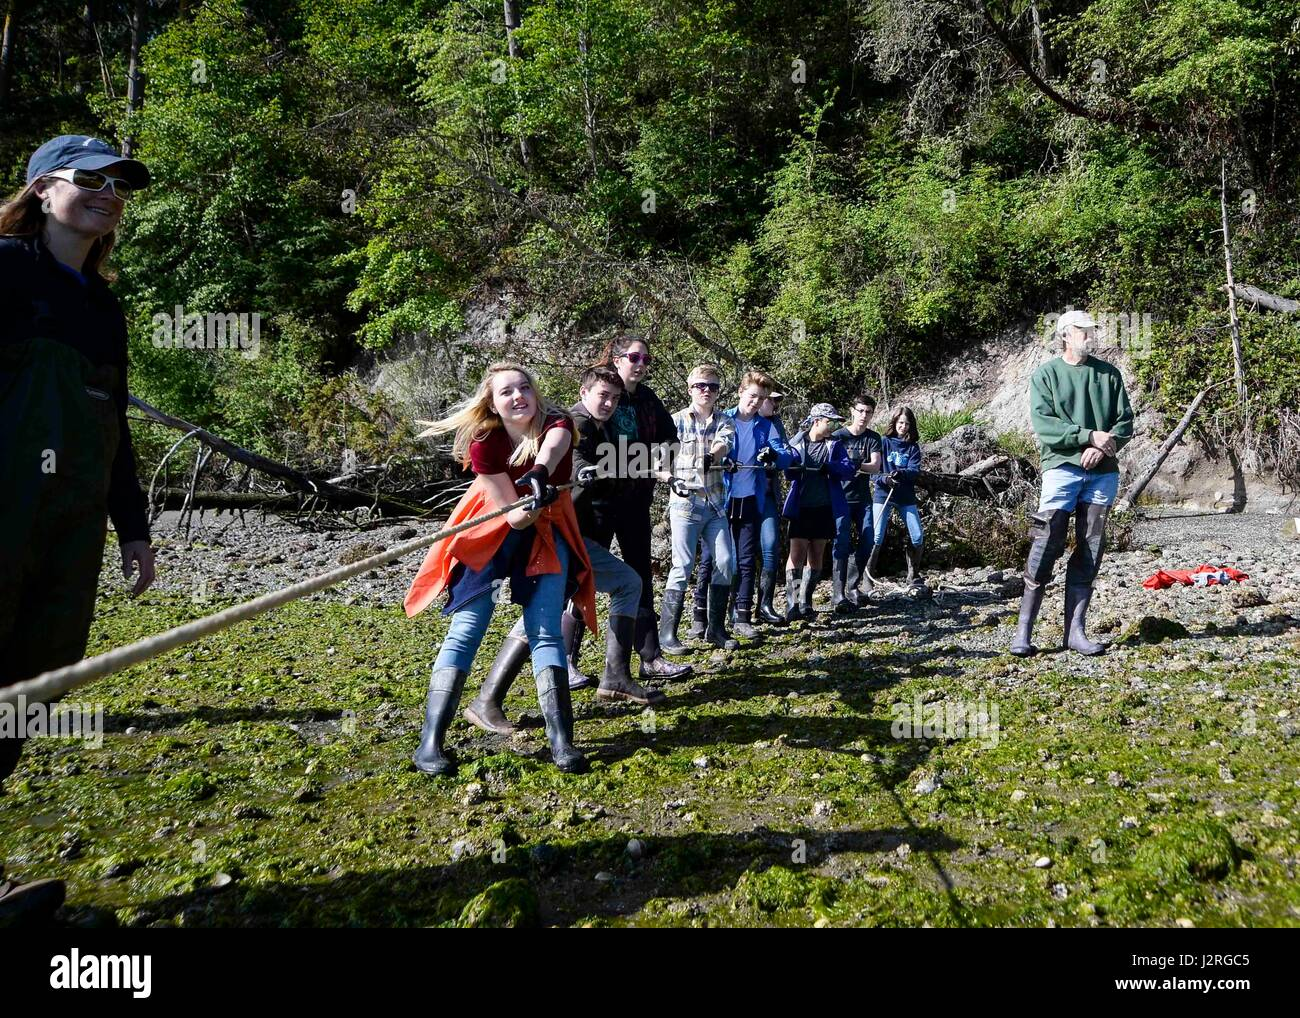 170428-N-VH385-046 INDIAN ISLAND, Wash., (April 28, 2017) – Students from Blue Heron Middle School heave on line - Stock Image